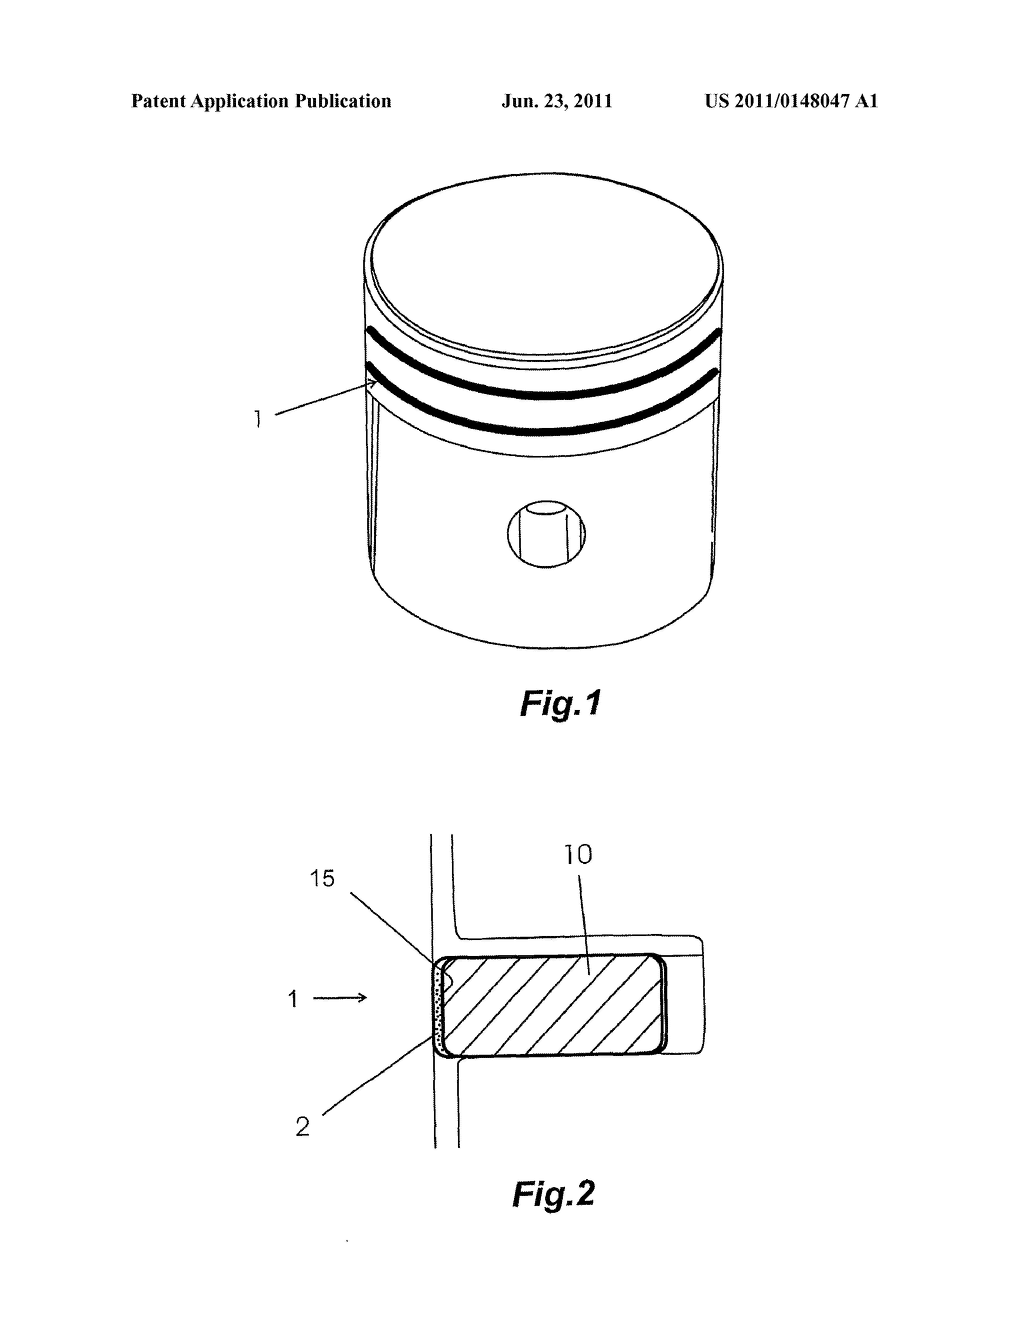 hight resolution of piston ring for internal combustion engine diagram schematic and image 02